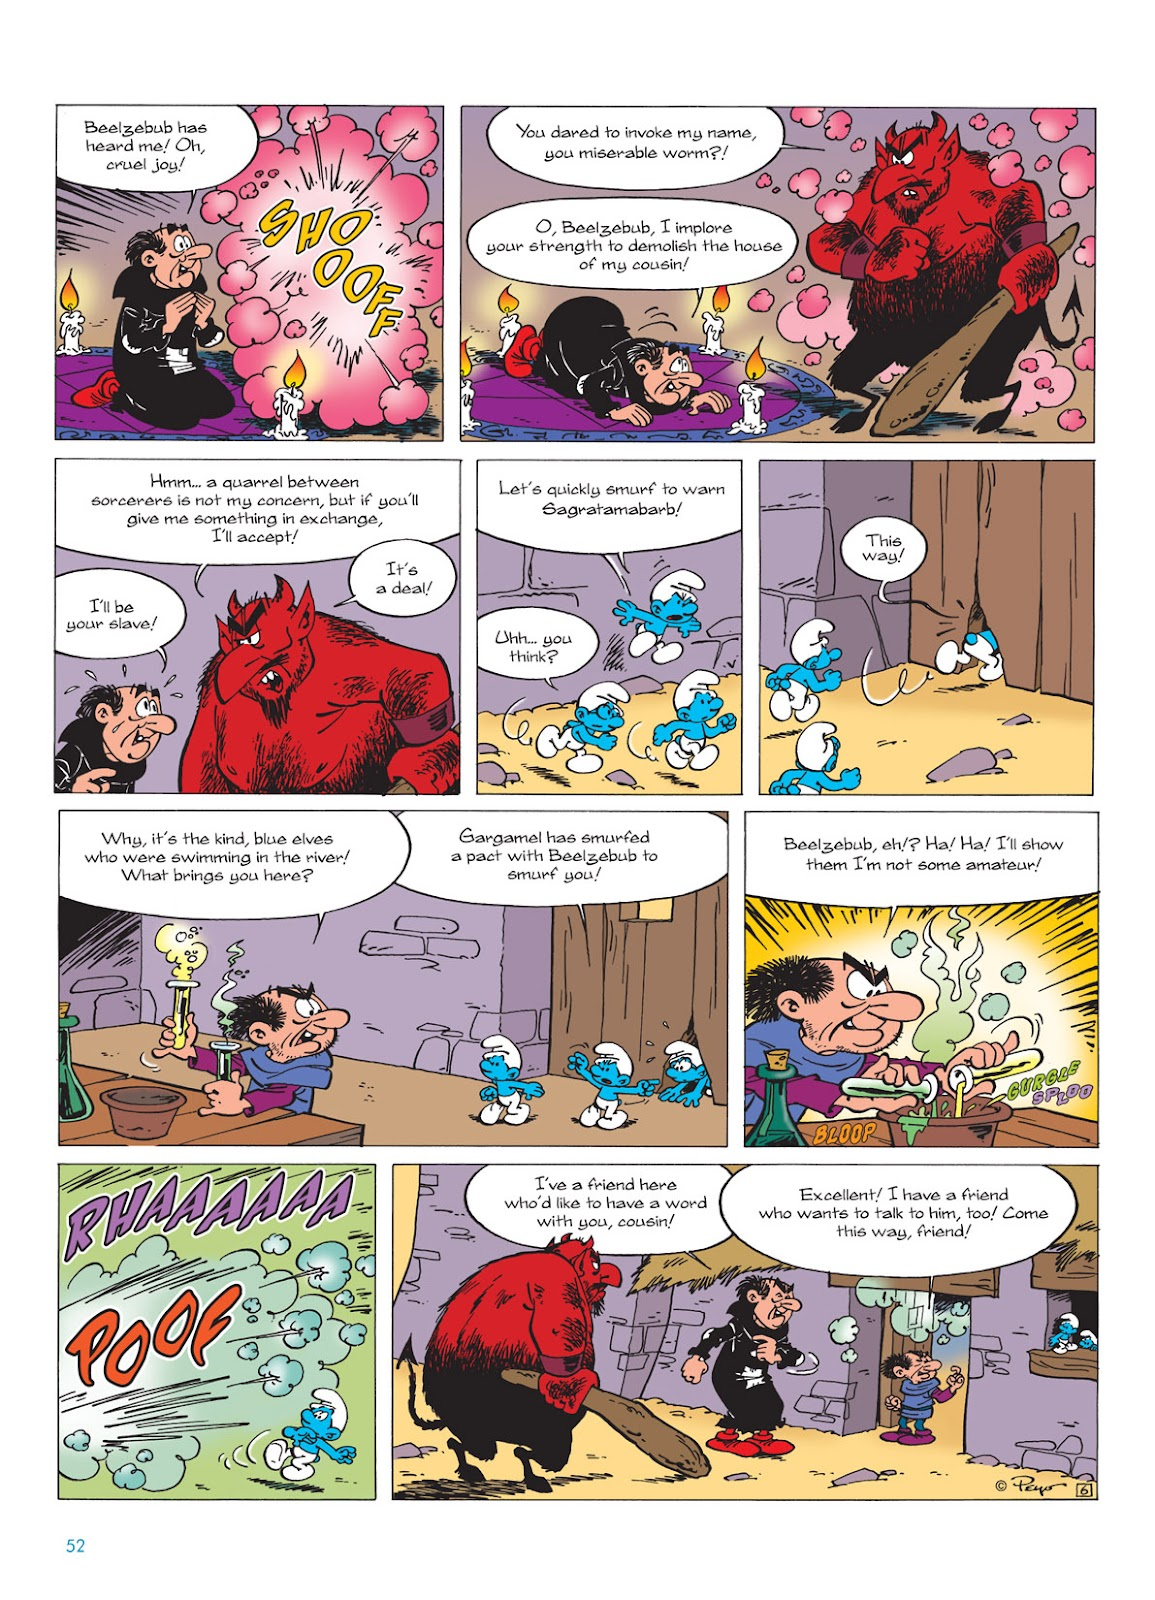 Read online The Smurfs comic -  Issue #9 - 52